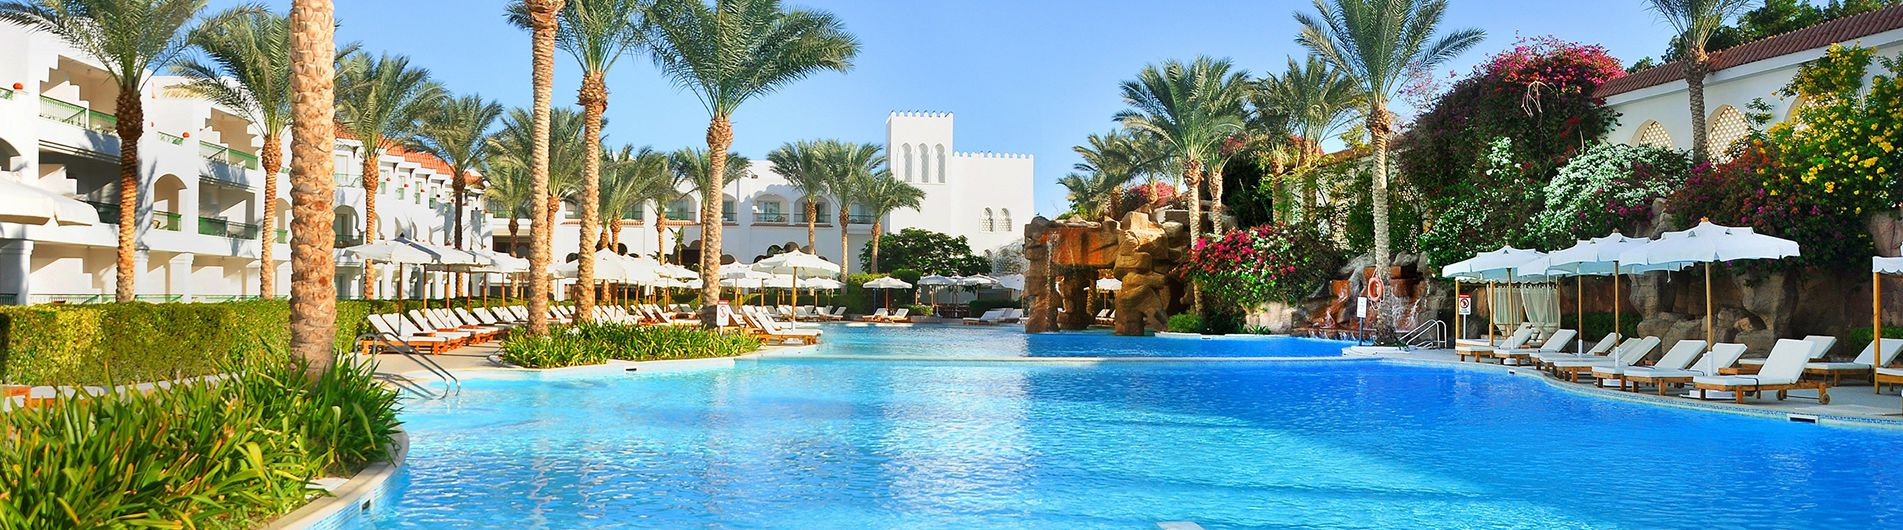 Baron Palms Resort Sharm el Sheikh